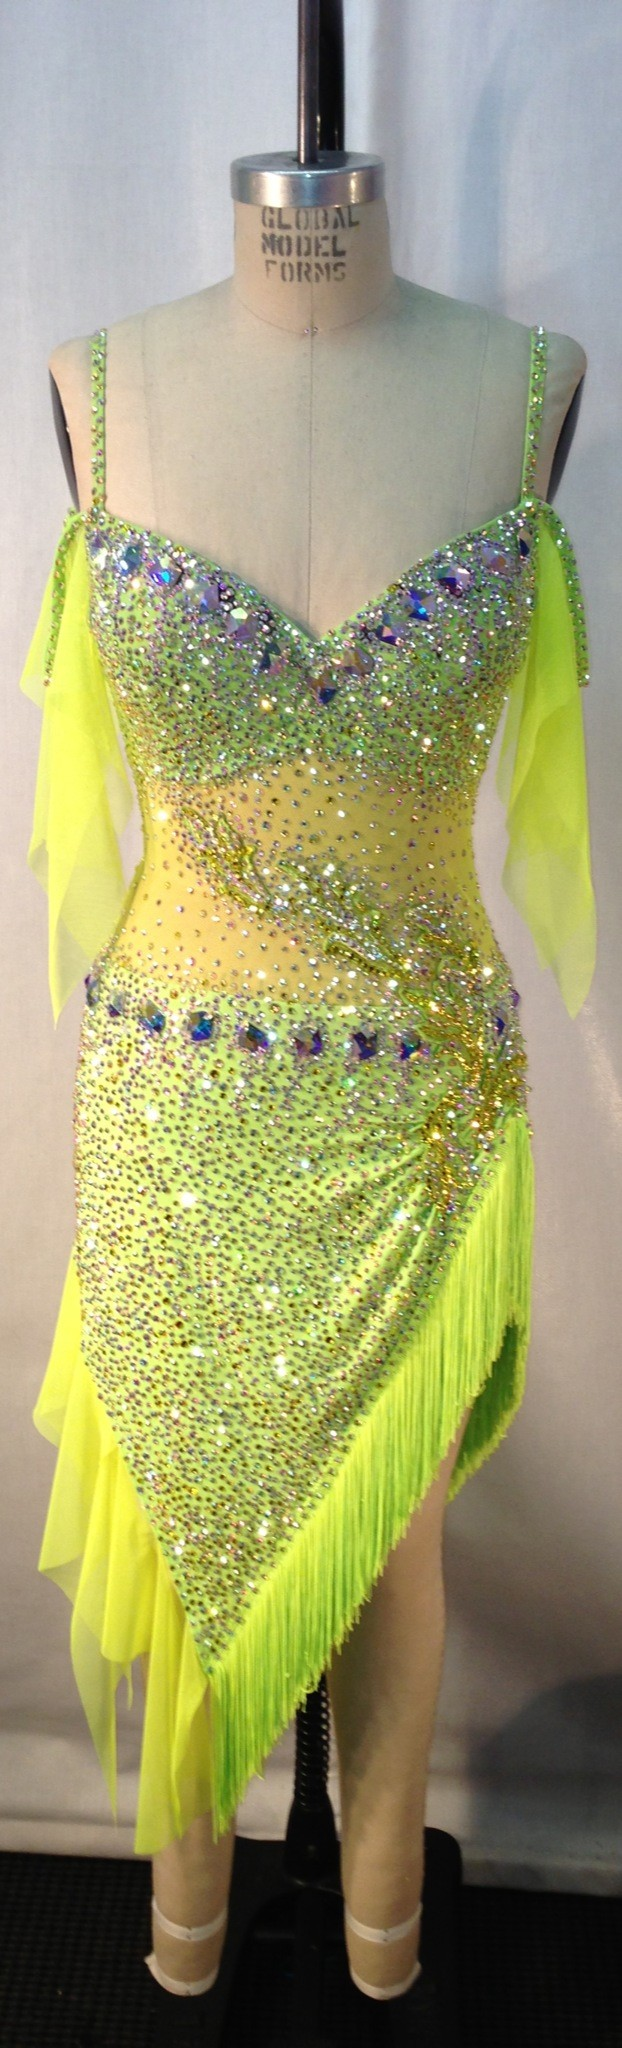 Yellow Dress With Extensive Stoning And Light Fringe And Frills Visit Http Ballroomguide Com Comp Attire Lady Html Fo Dance Dresses Ballroom Fashion Dresses